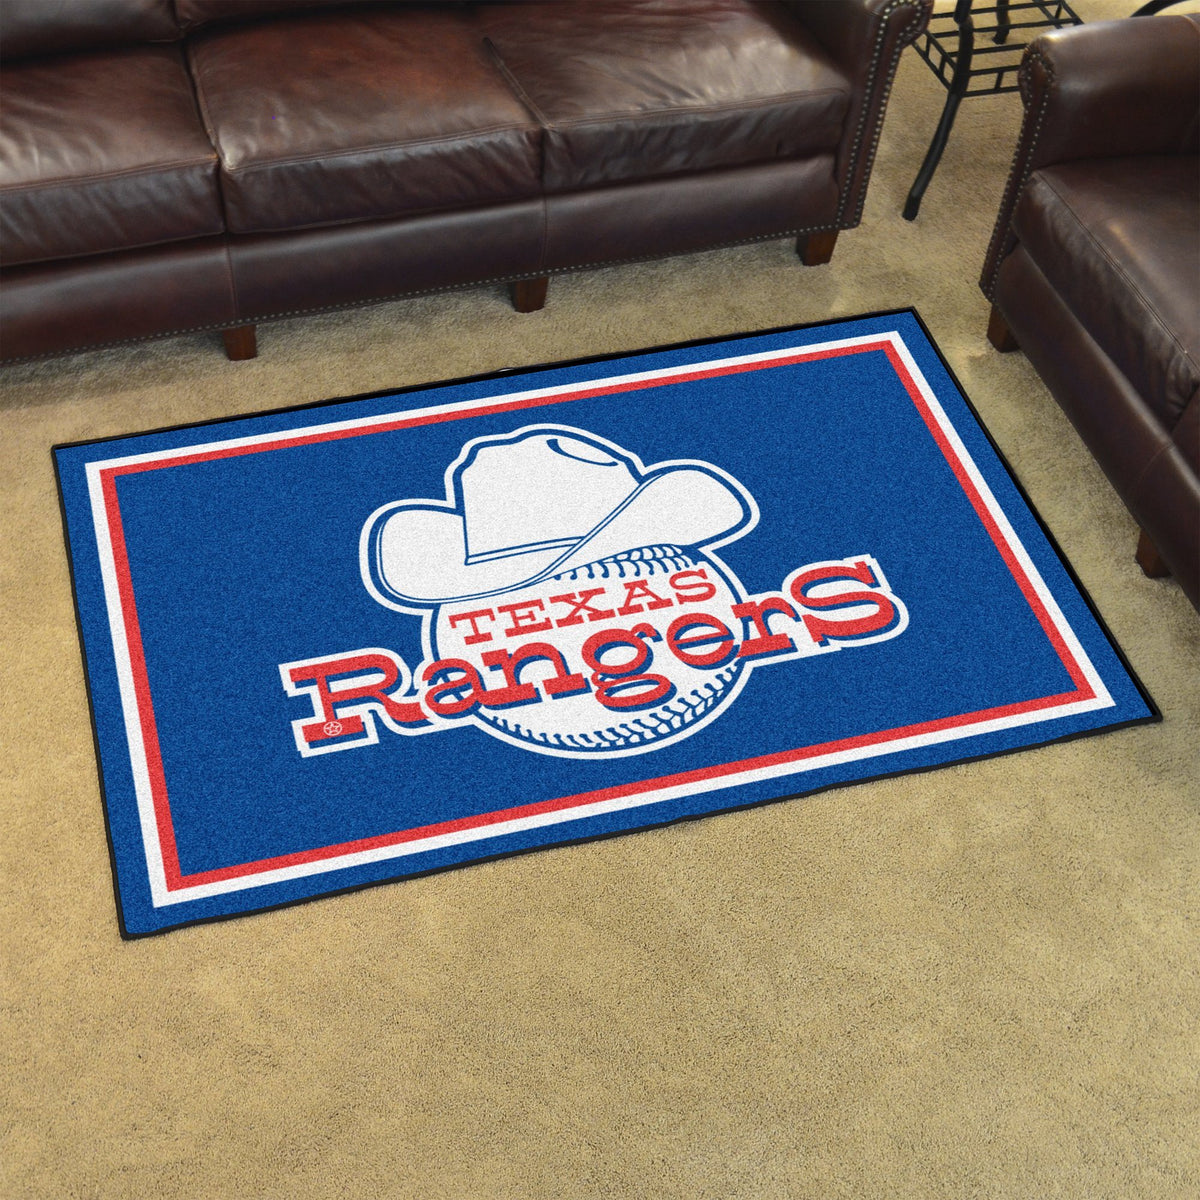 MLB Retro - 4' x 6' Rug MLB Retro Mats, Plush Rugs, 4x6 Rug, MLB, Home Fan Mats Texas Rangers